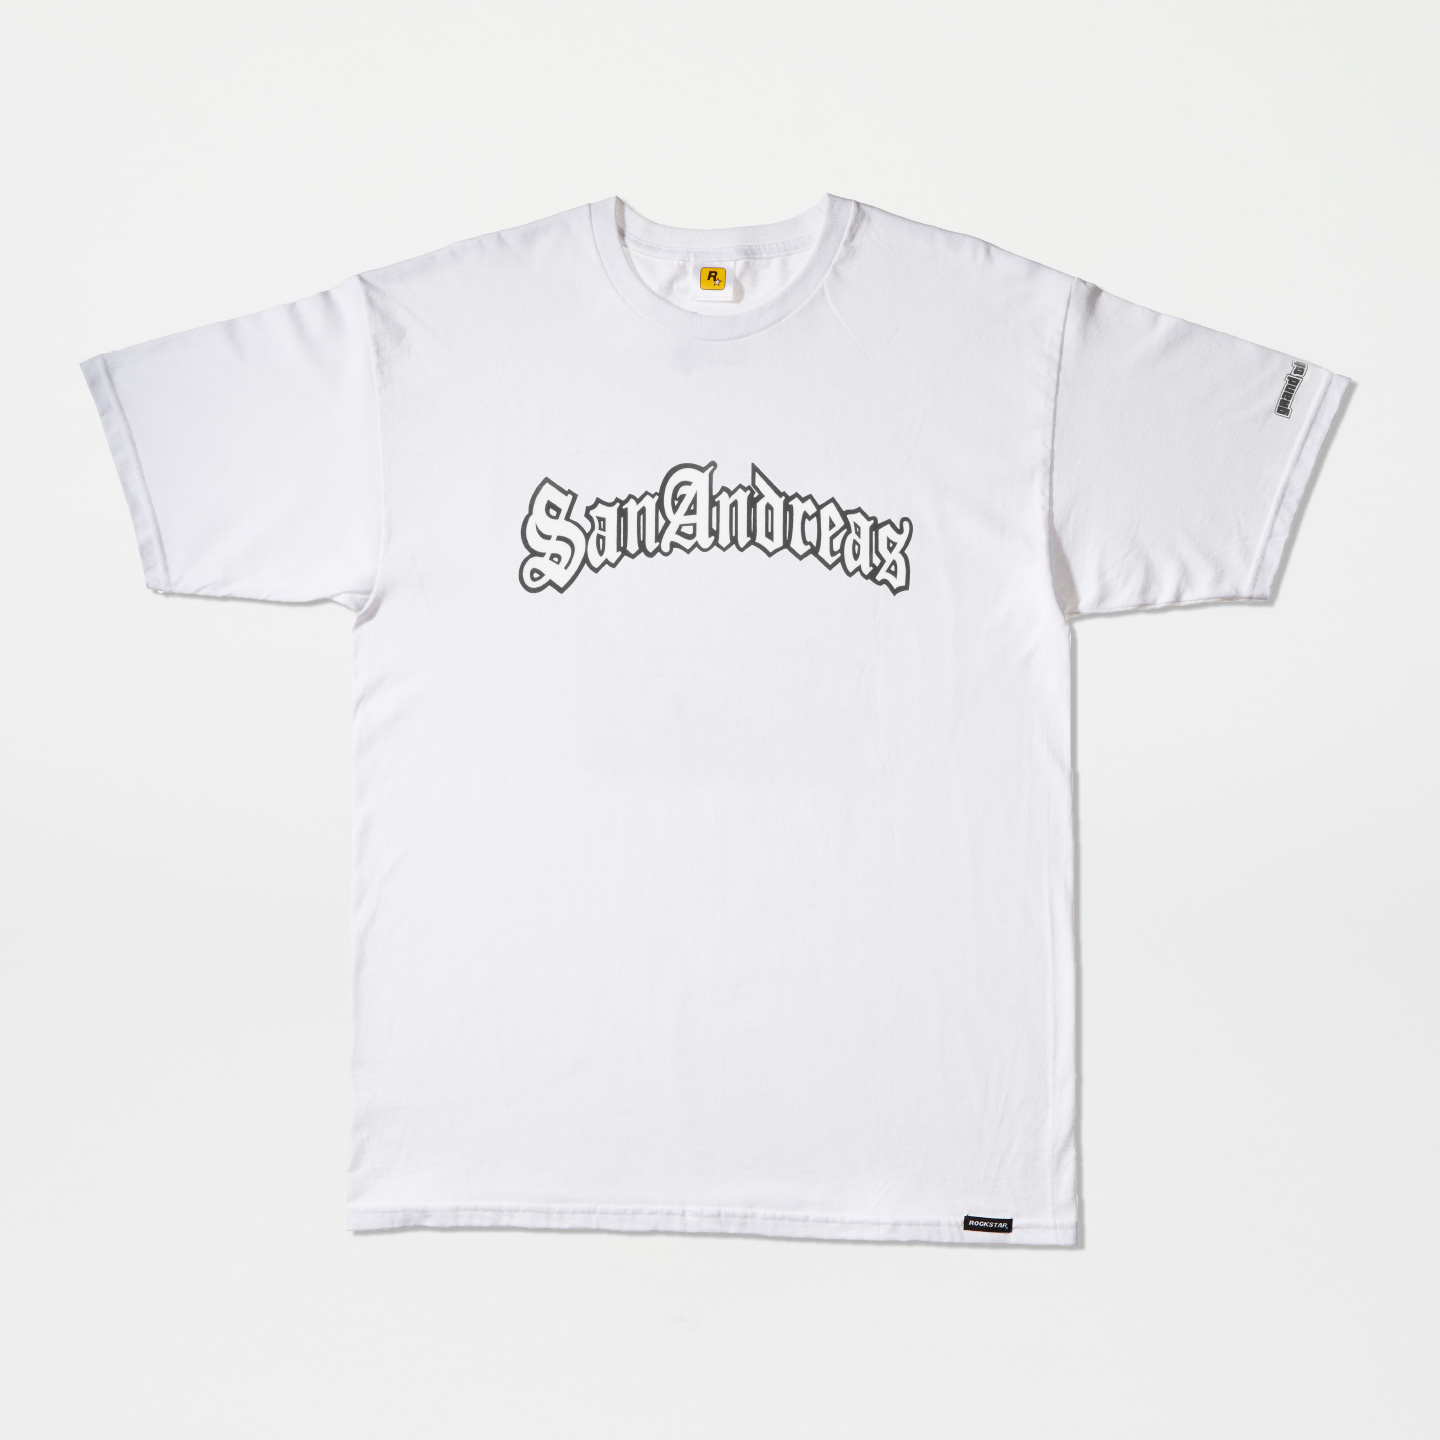 Grand Theft Auto: San Andreas White Tee